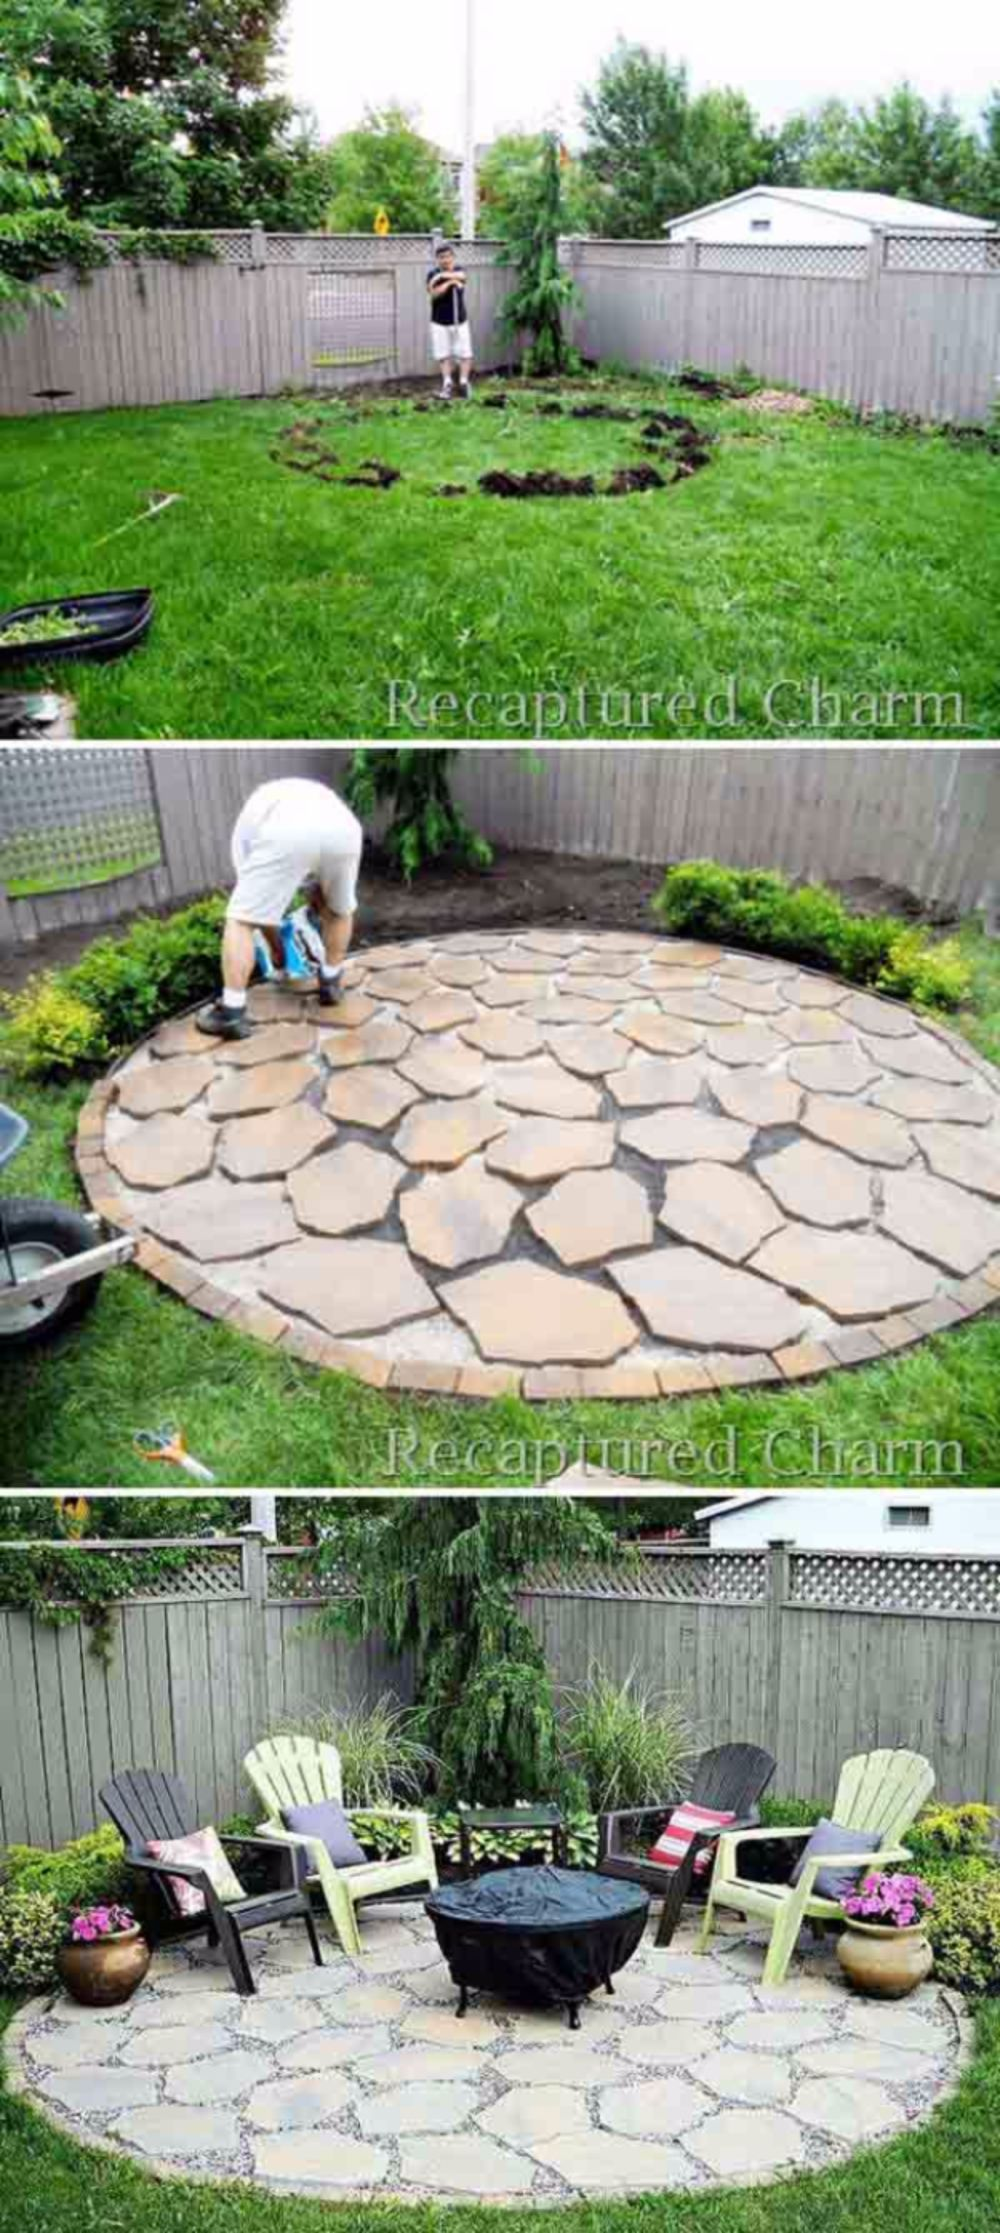 budget patio ideas - Kemist.orbitalshow.co on cheap backyard ideas, backyard court ideas, small back yard landscaping ideas, backyard umbrella ideas, backyard steps ideas, backyard deck ideas, backyard bathroom ideas, backyard river ideas, backyard concrete ideas, backyard patio ideas, backyard landscaping ideas, backyard brick ideas, backyard block ideas, backyard water ideas, backyard entryway ideas, backyard wood ideas, backyard platform ideas, backyard pier ideas, backyard garden walkways, backyard passage ideas,